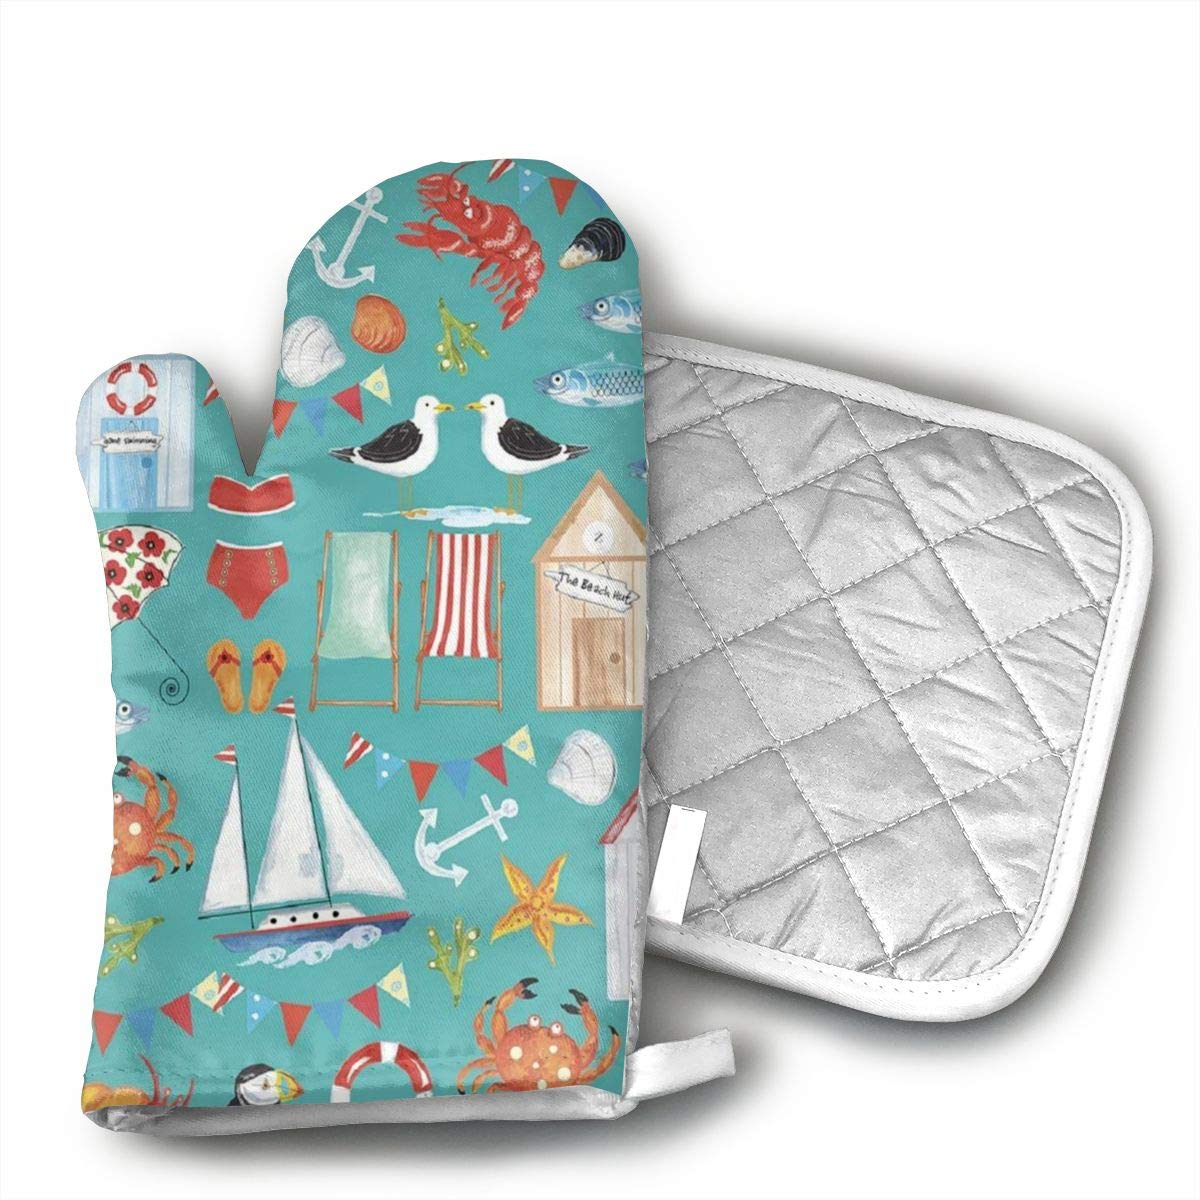 JFNNRUOP Beachy Summer Oven Mitts,with Potholders Oven Gloves,Insulated Quilted Cotton Potholders